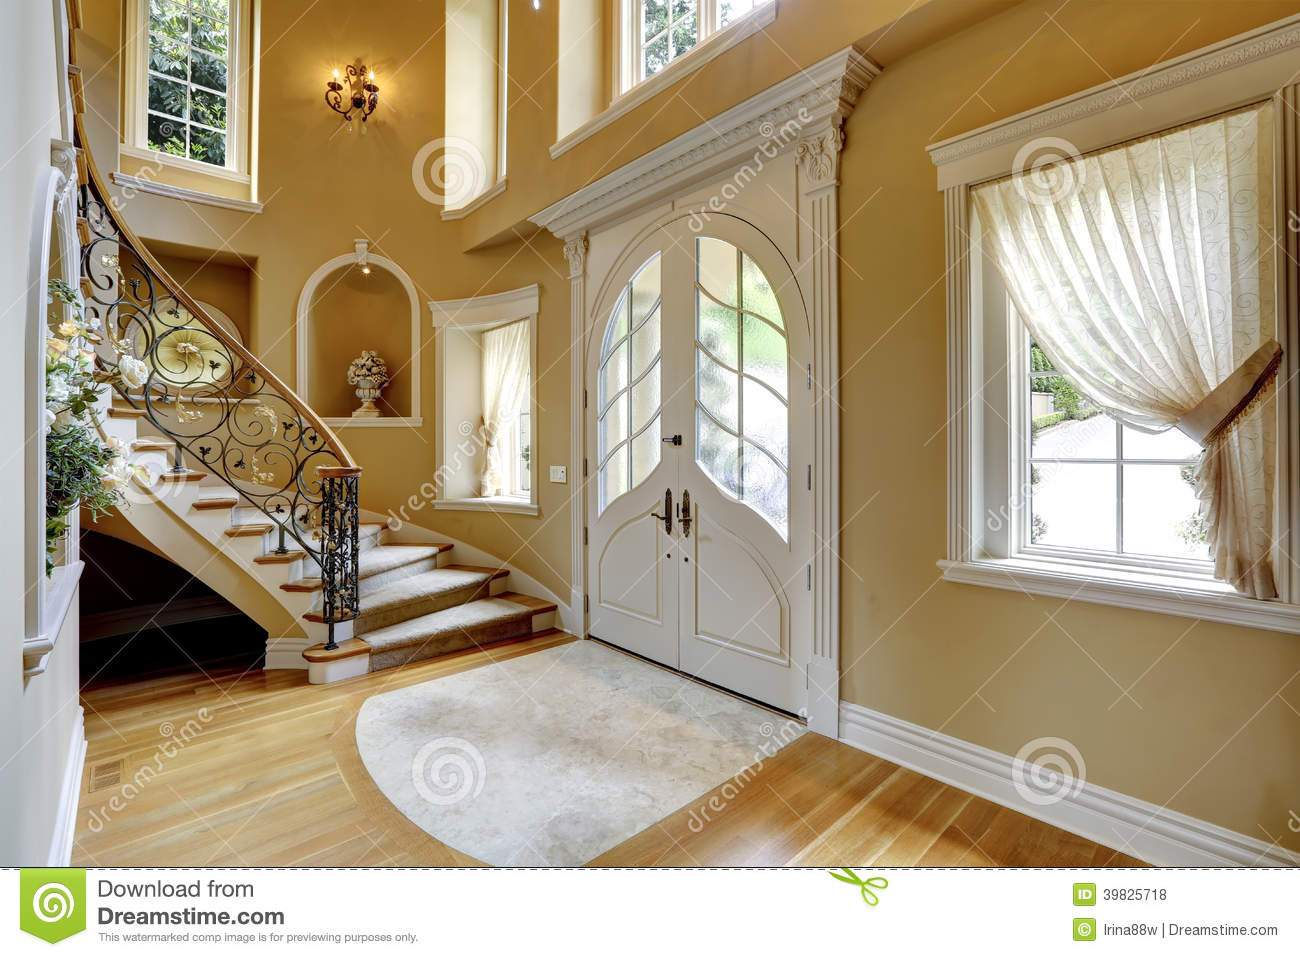 Luxury house interior entrance hallway stock photo for Wallpaper for home entrance